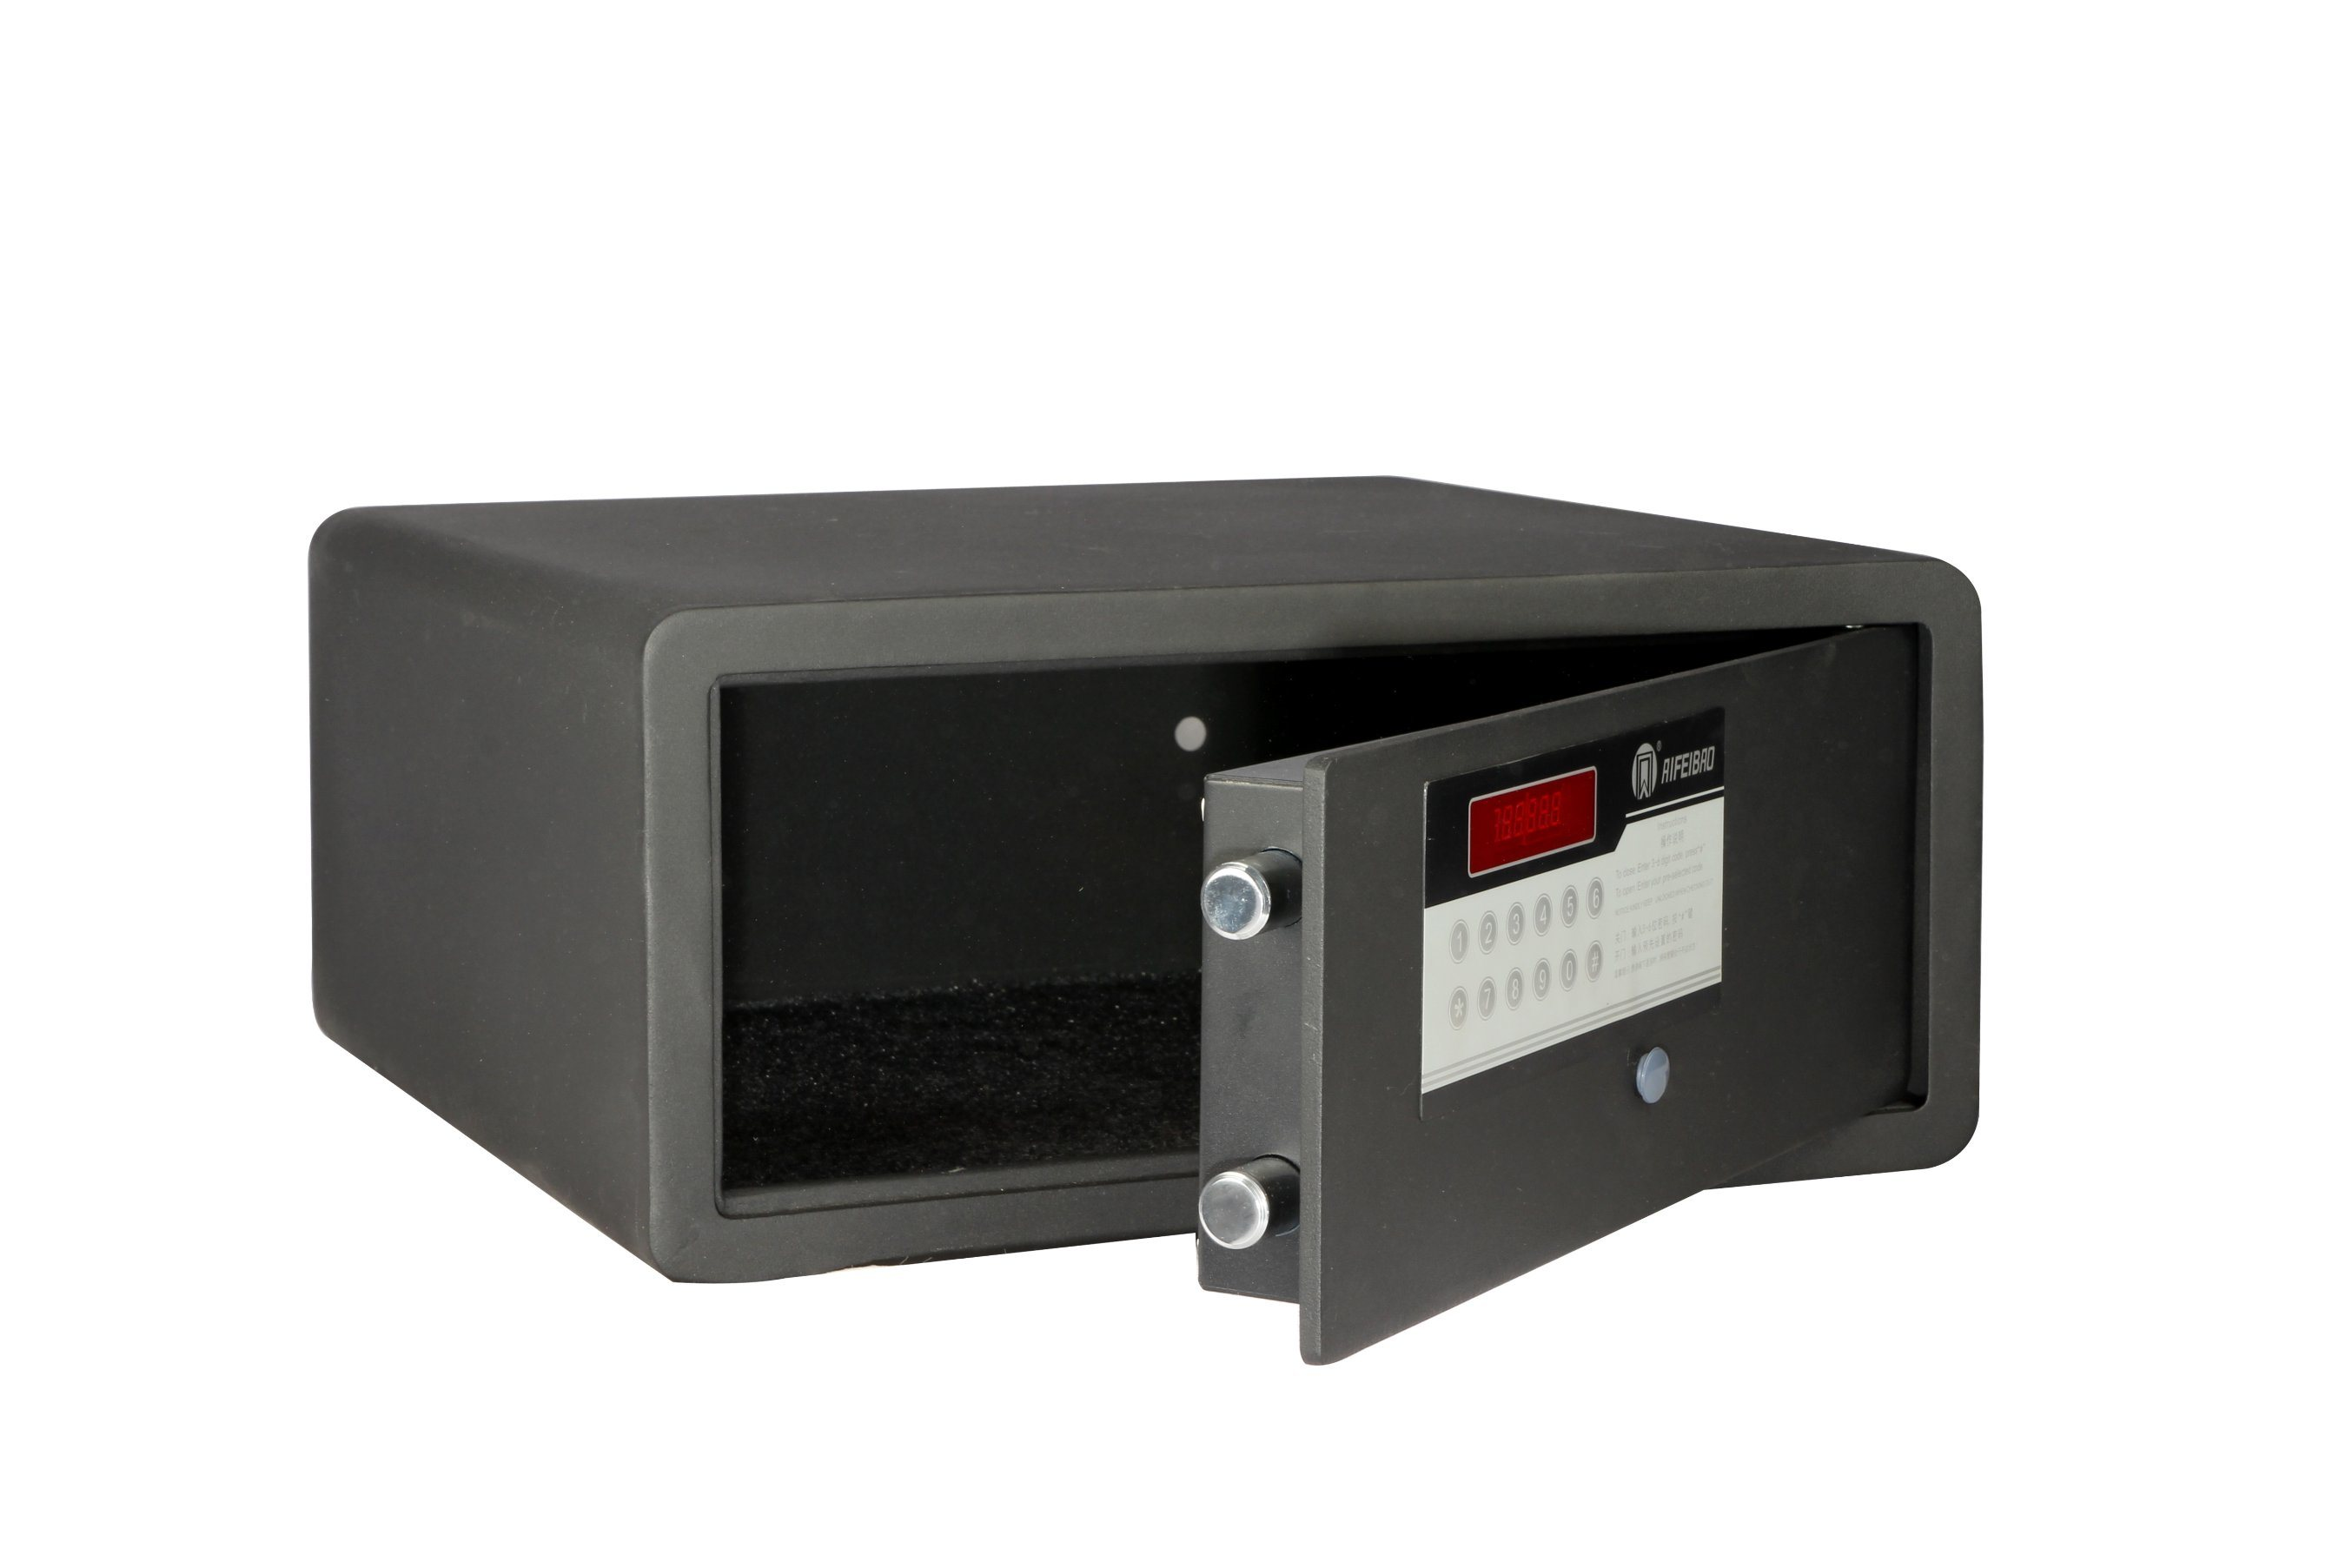 Hotel Safes with Electronic Lock Hc2043